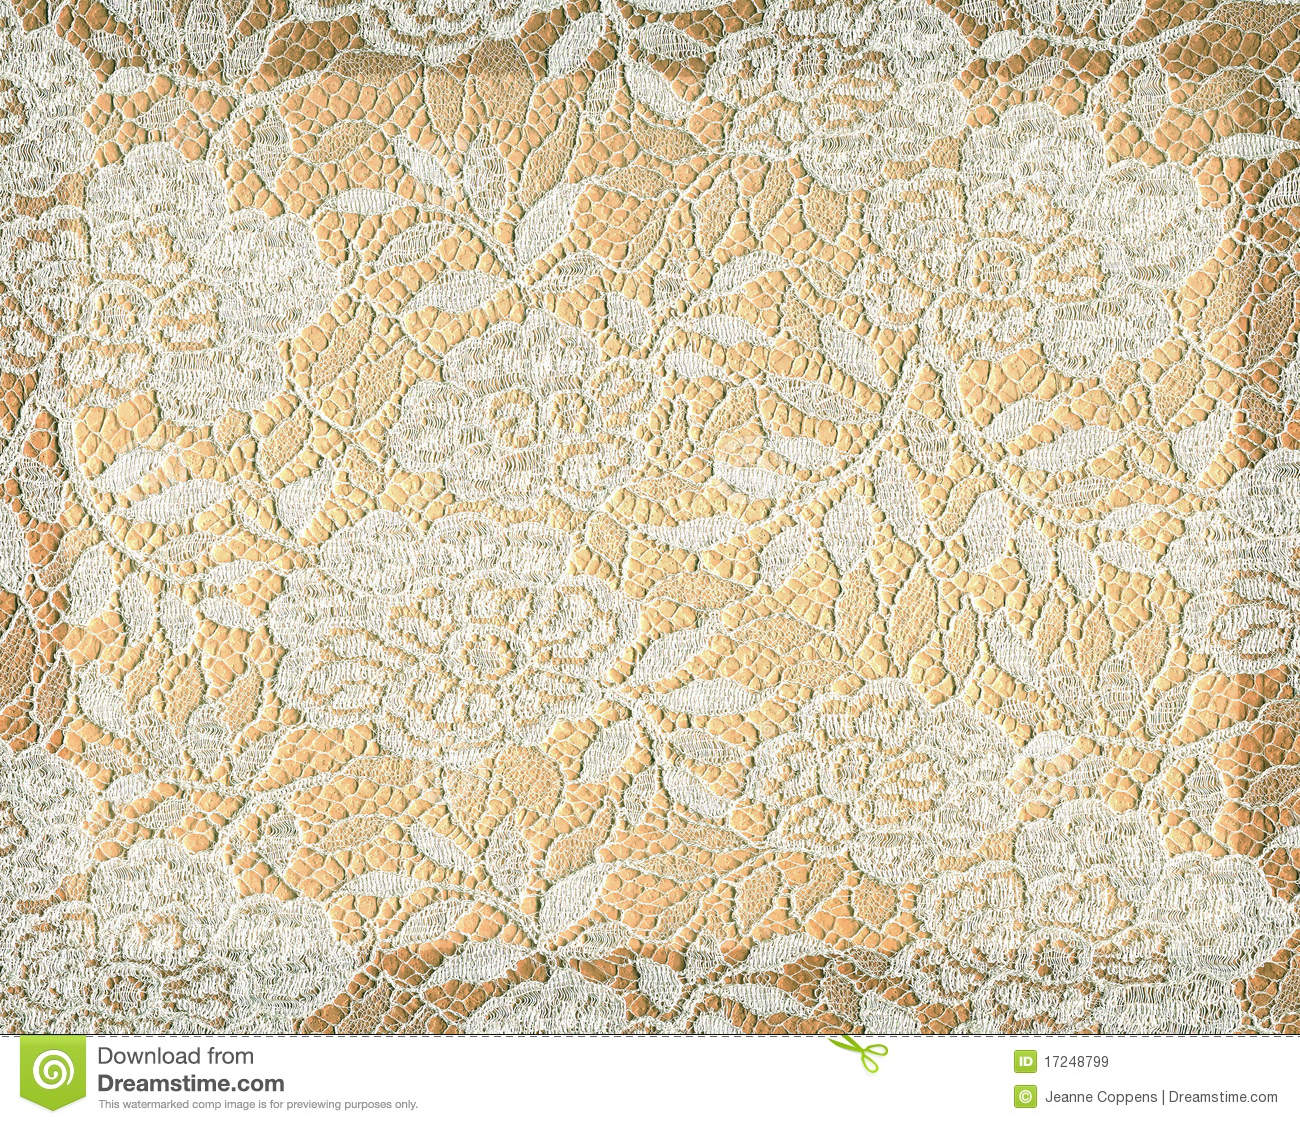 Vintage Background With Lace. Stock Image - Image of form ...